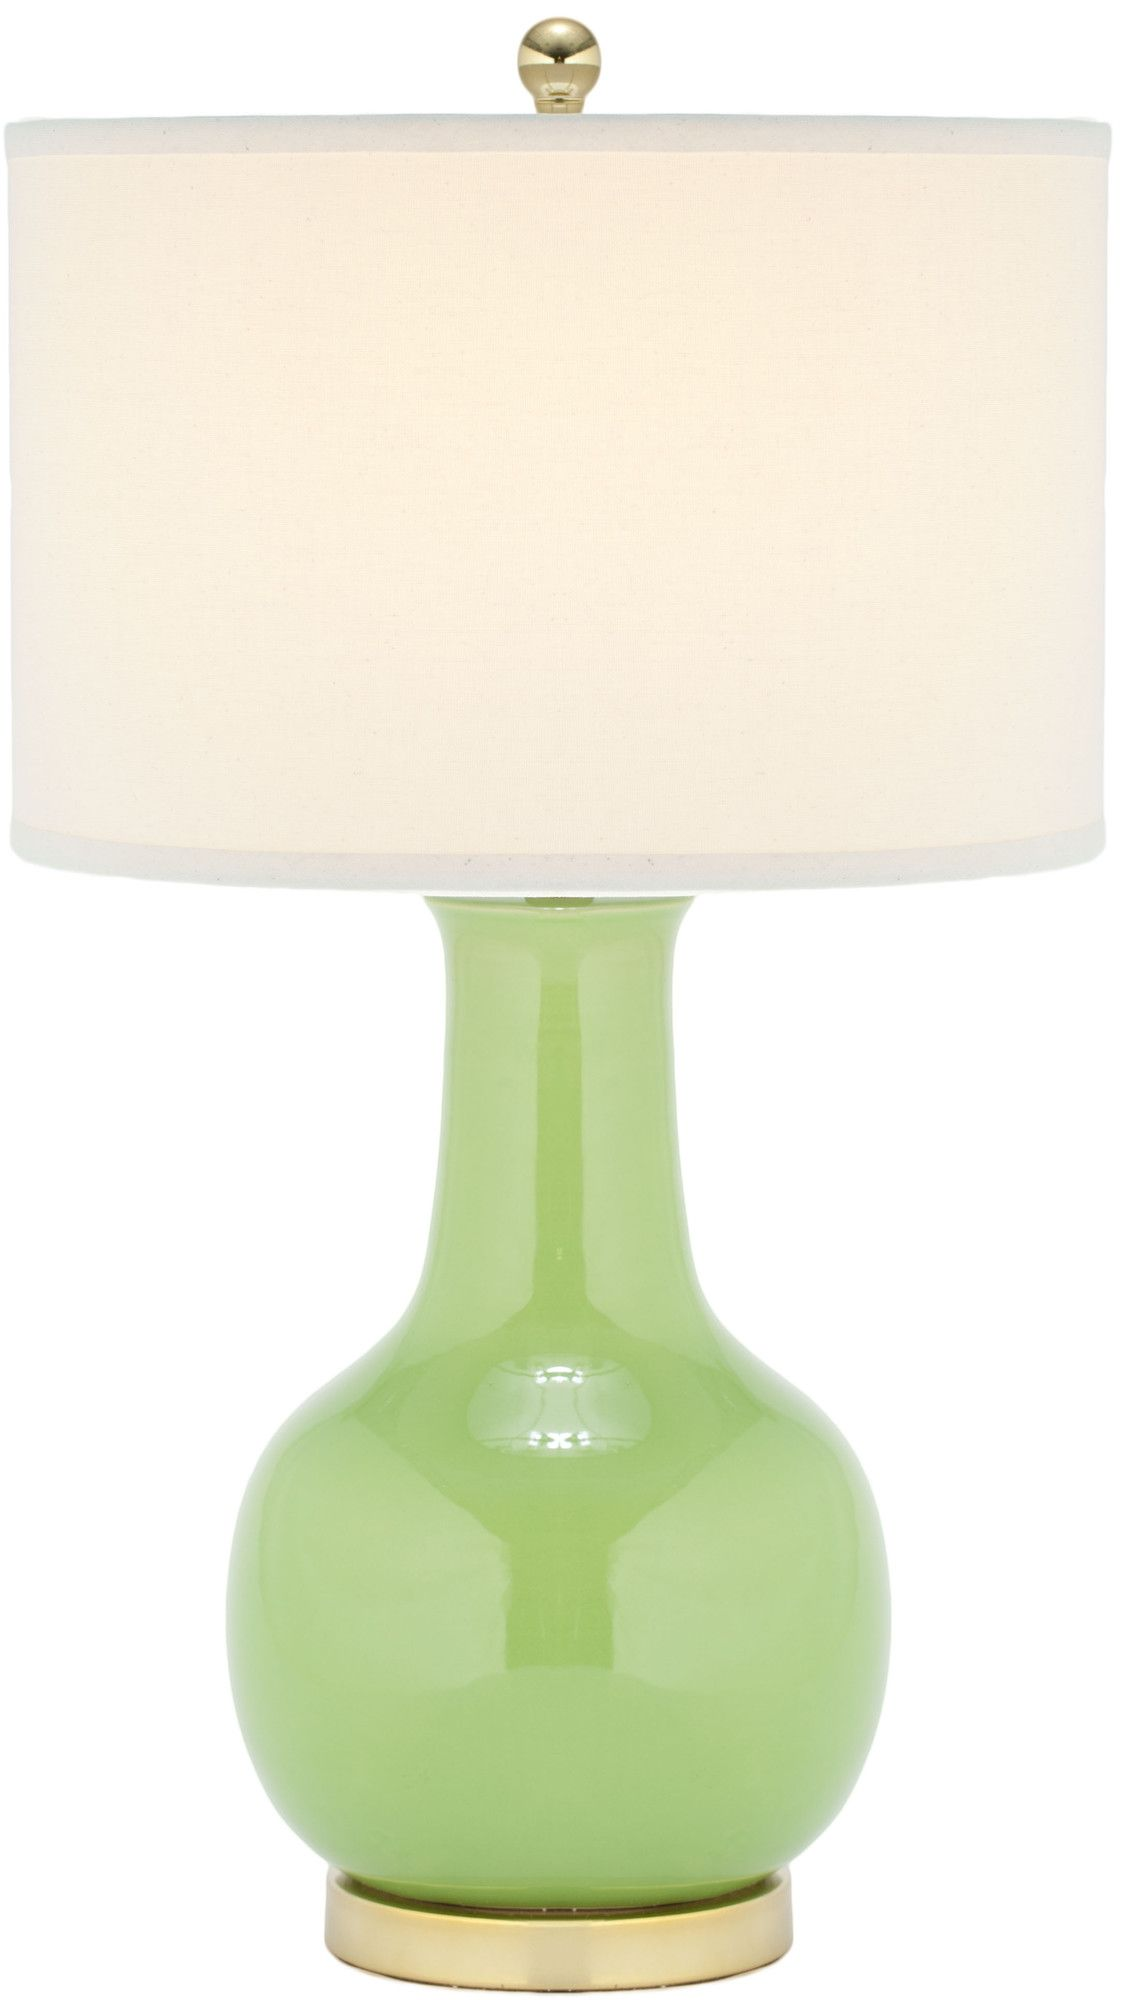 Safavieh Judy Table Lamp Wayfair Wayfair Homemaker Tips Picks